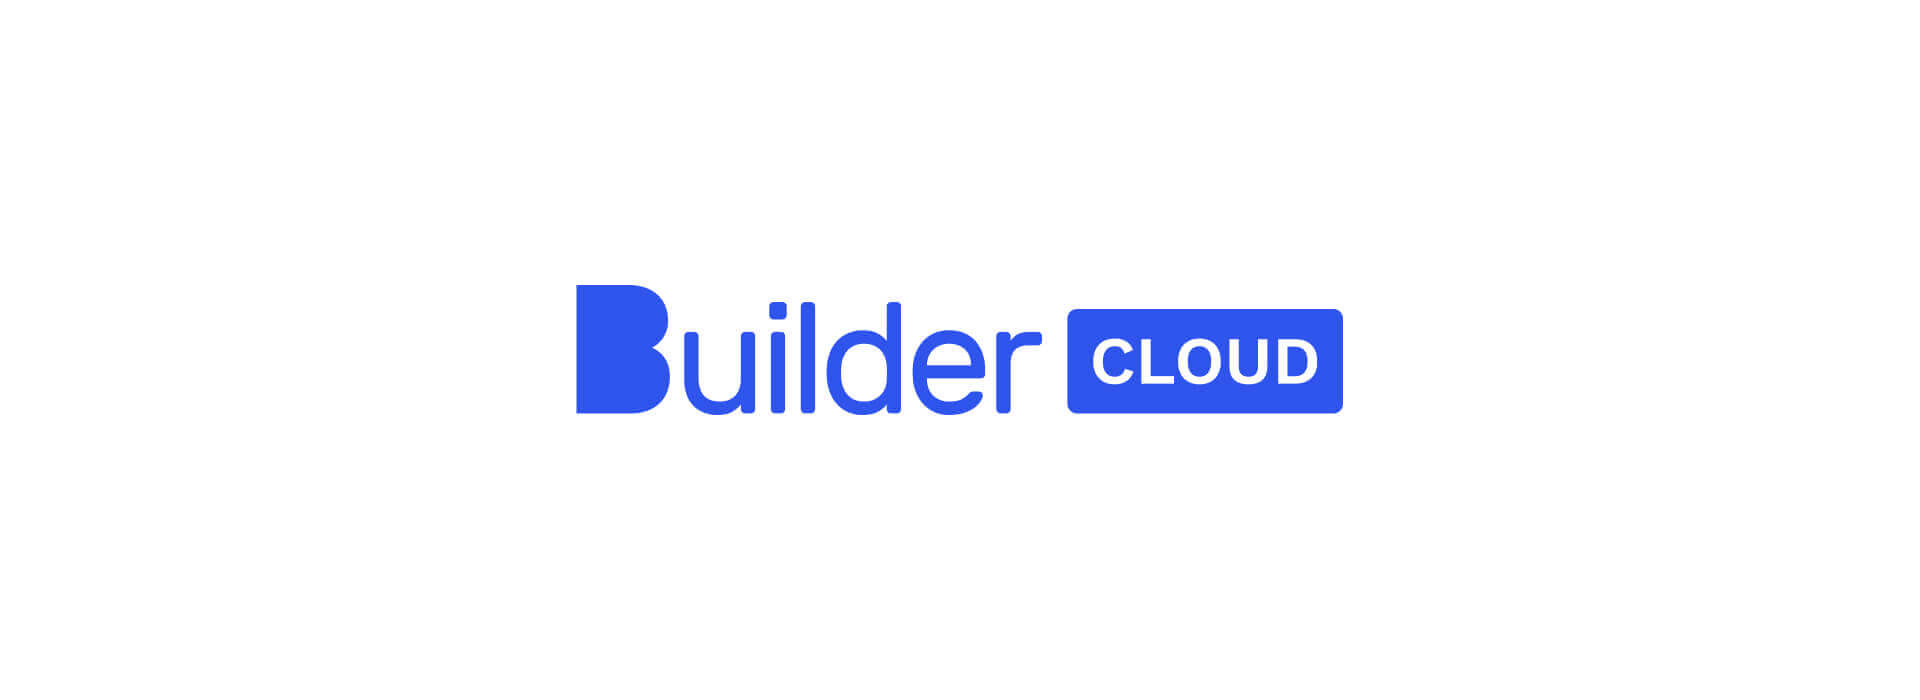 Cloud, what? Answering your burning questions about the cloud